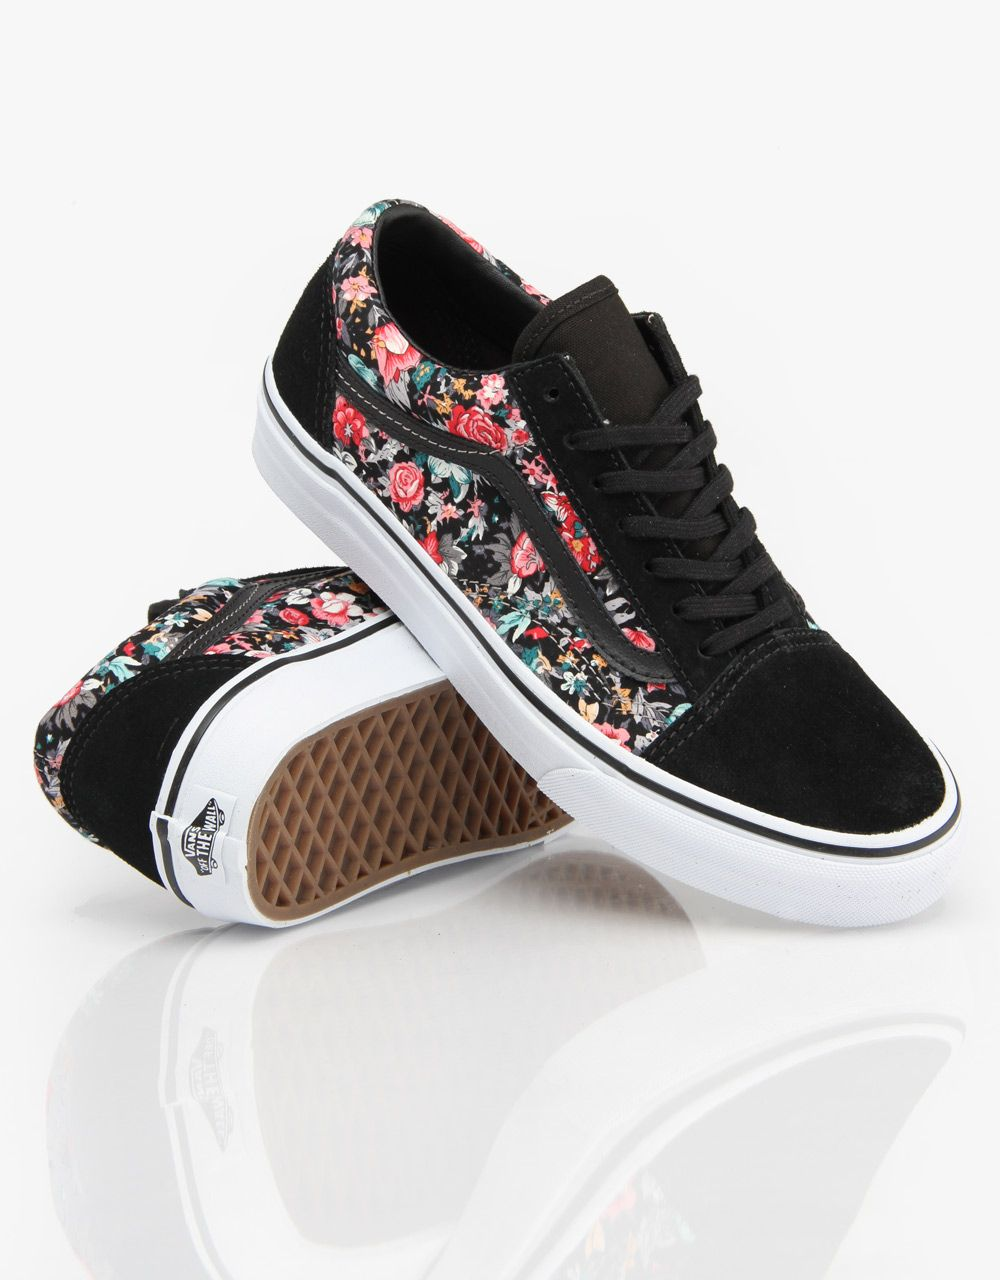 bd019ba01480 Vans Old Skool Girls Skate Shoes - Multi Floral Black True White -  RouteOne.co.uk